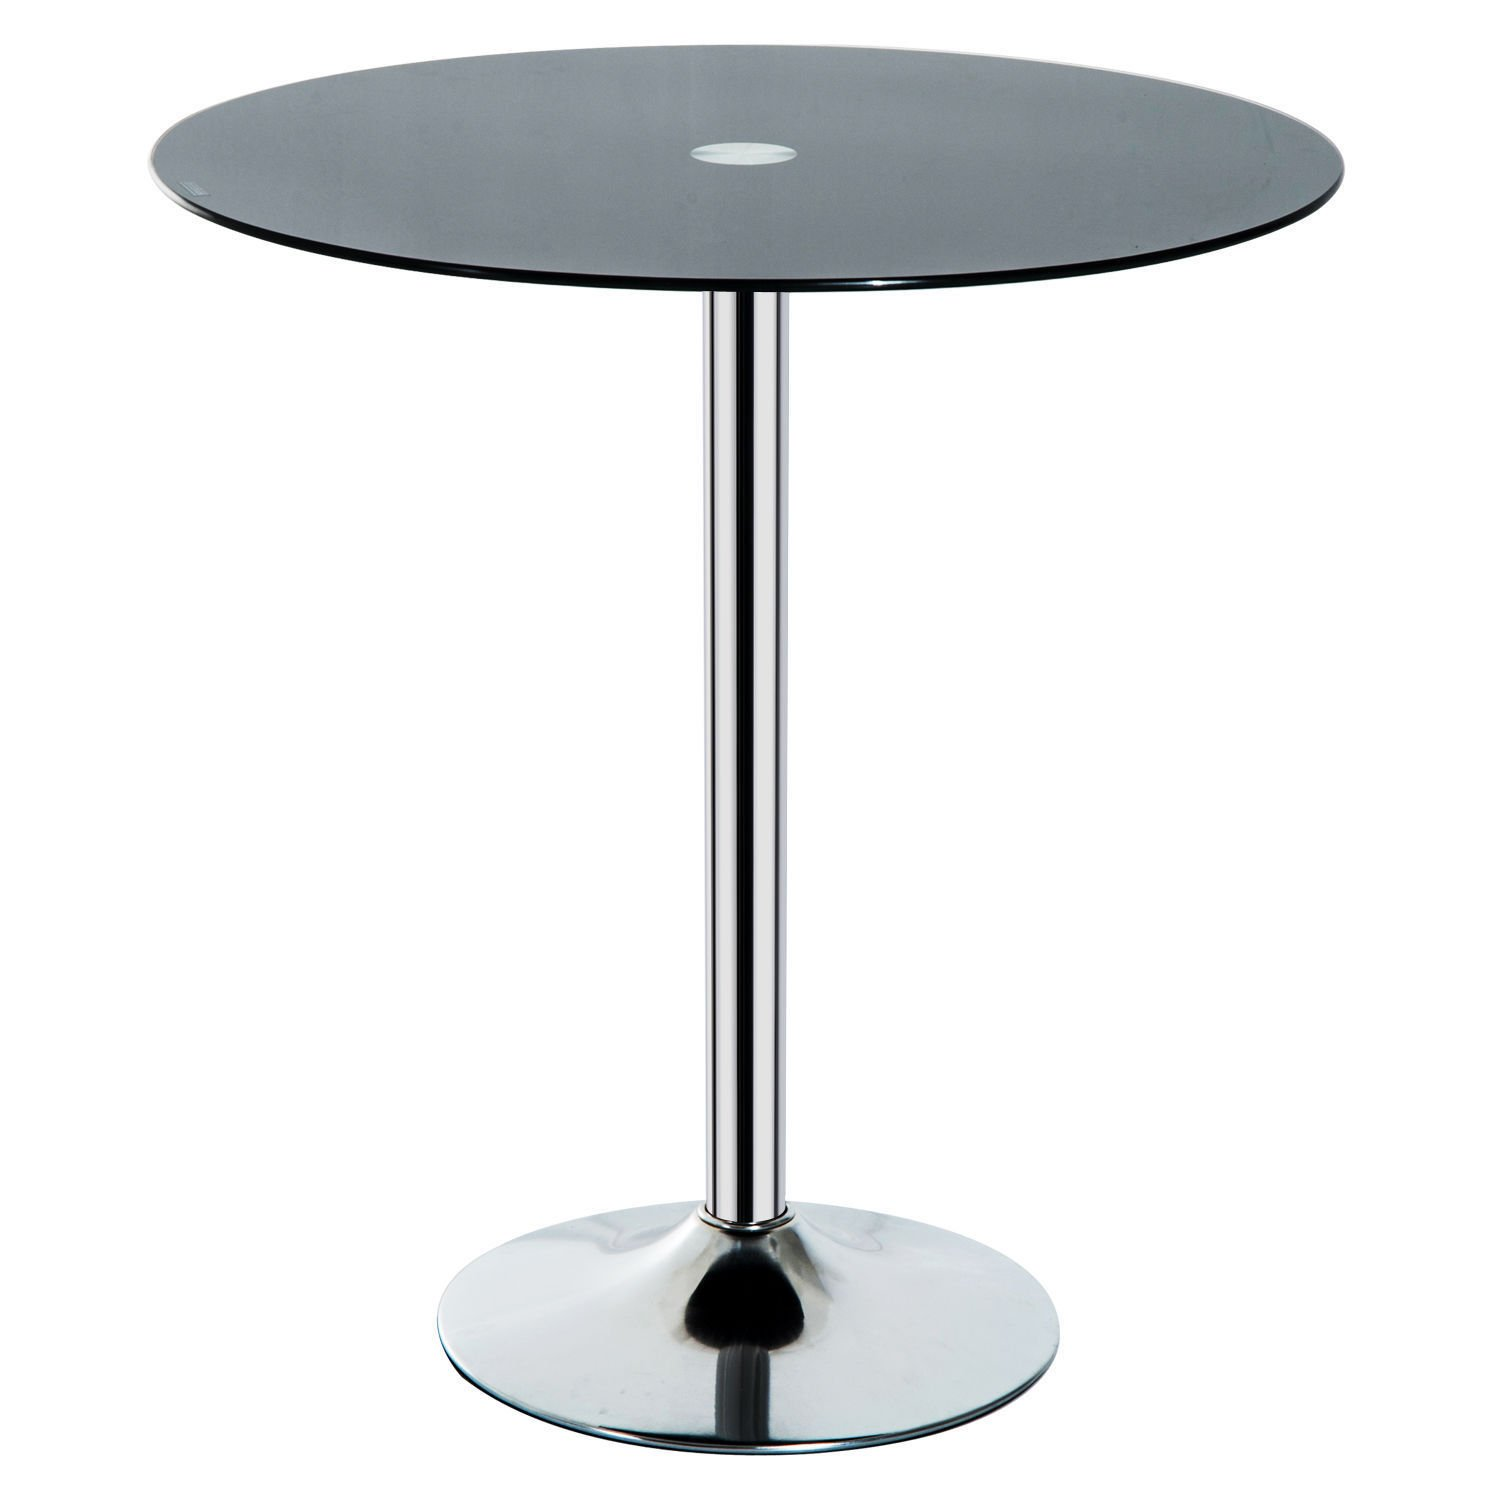 HOMCOM Modern 30'' Round Glass Top Iron Chrome Base Bistro Pub Side End Table - Charcoal Black